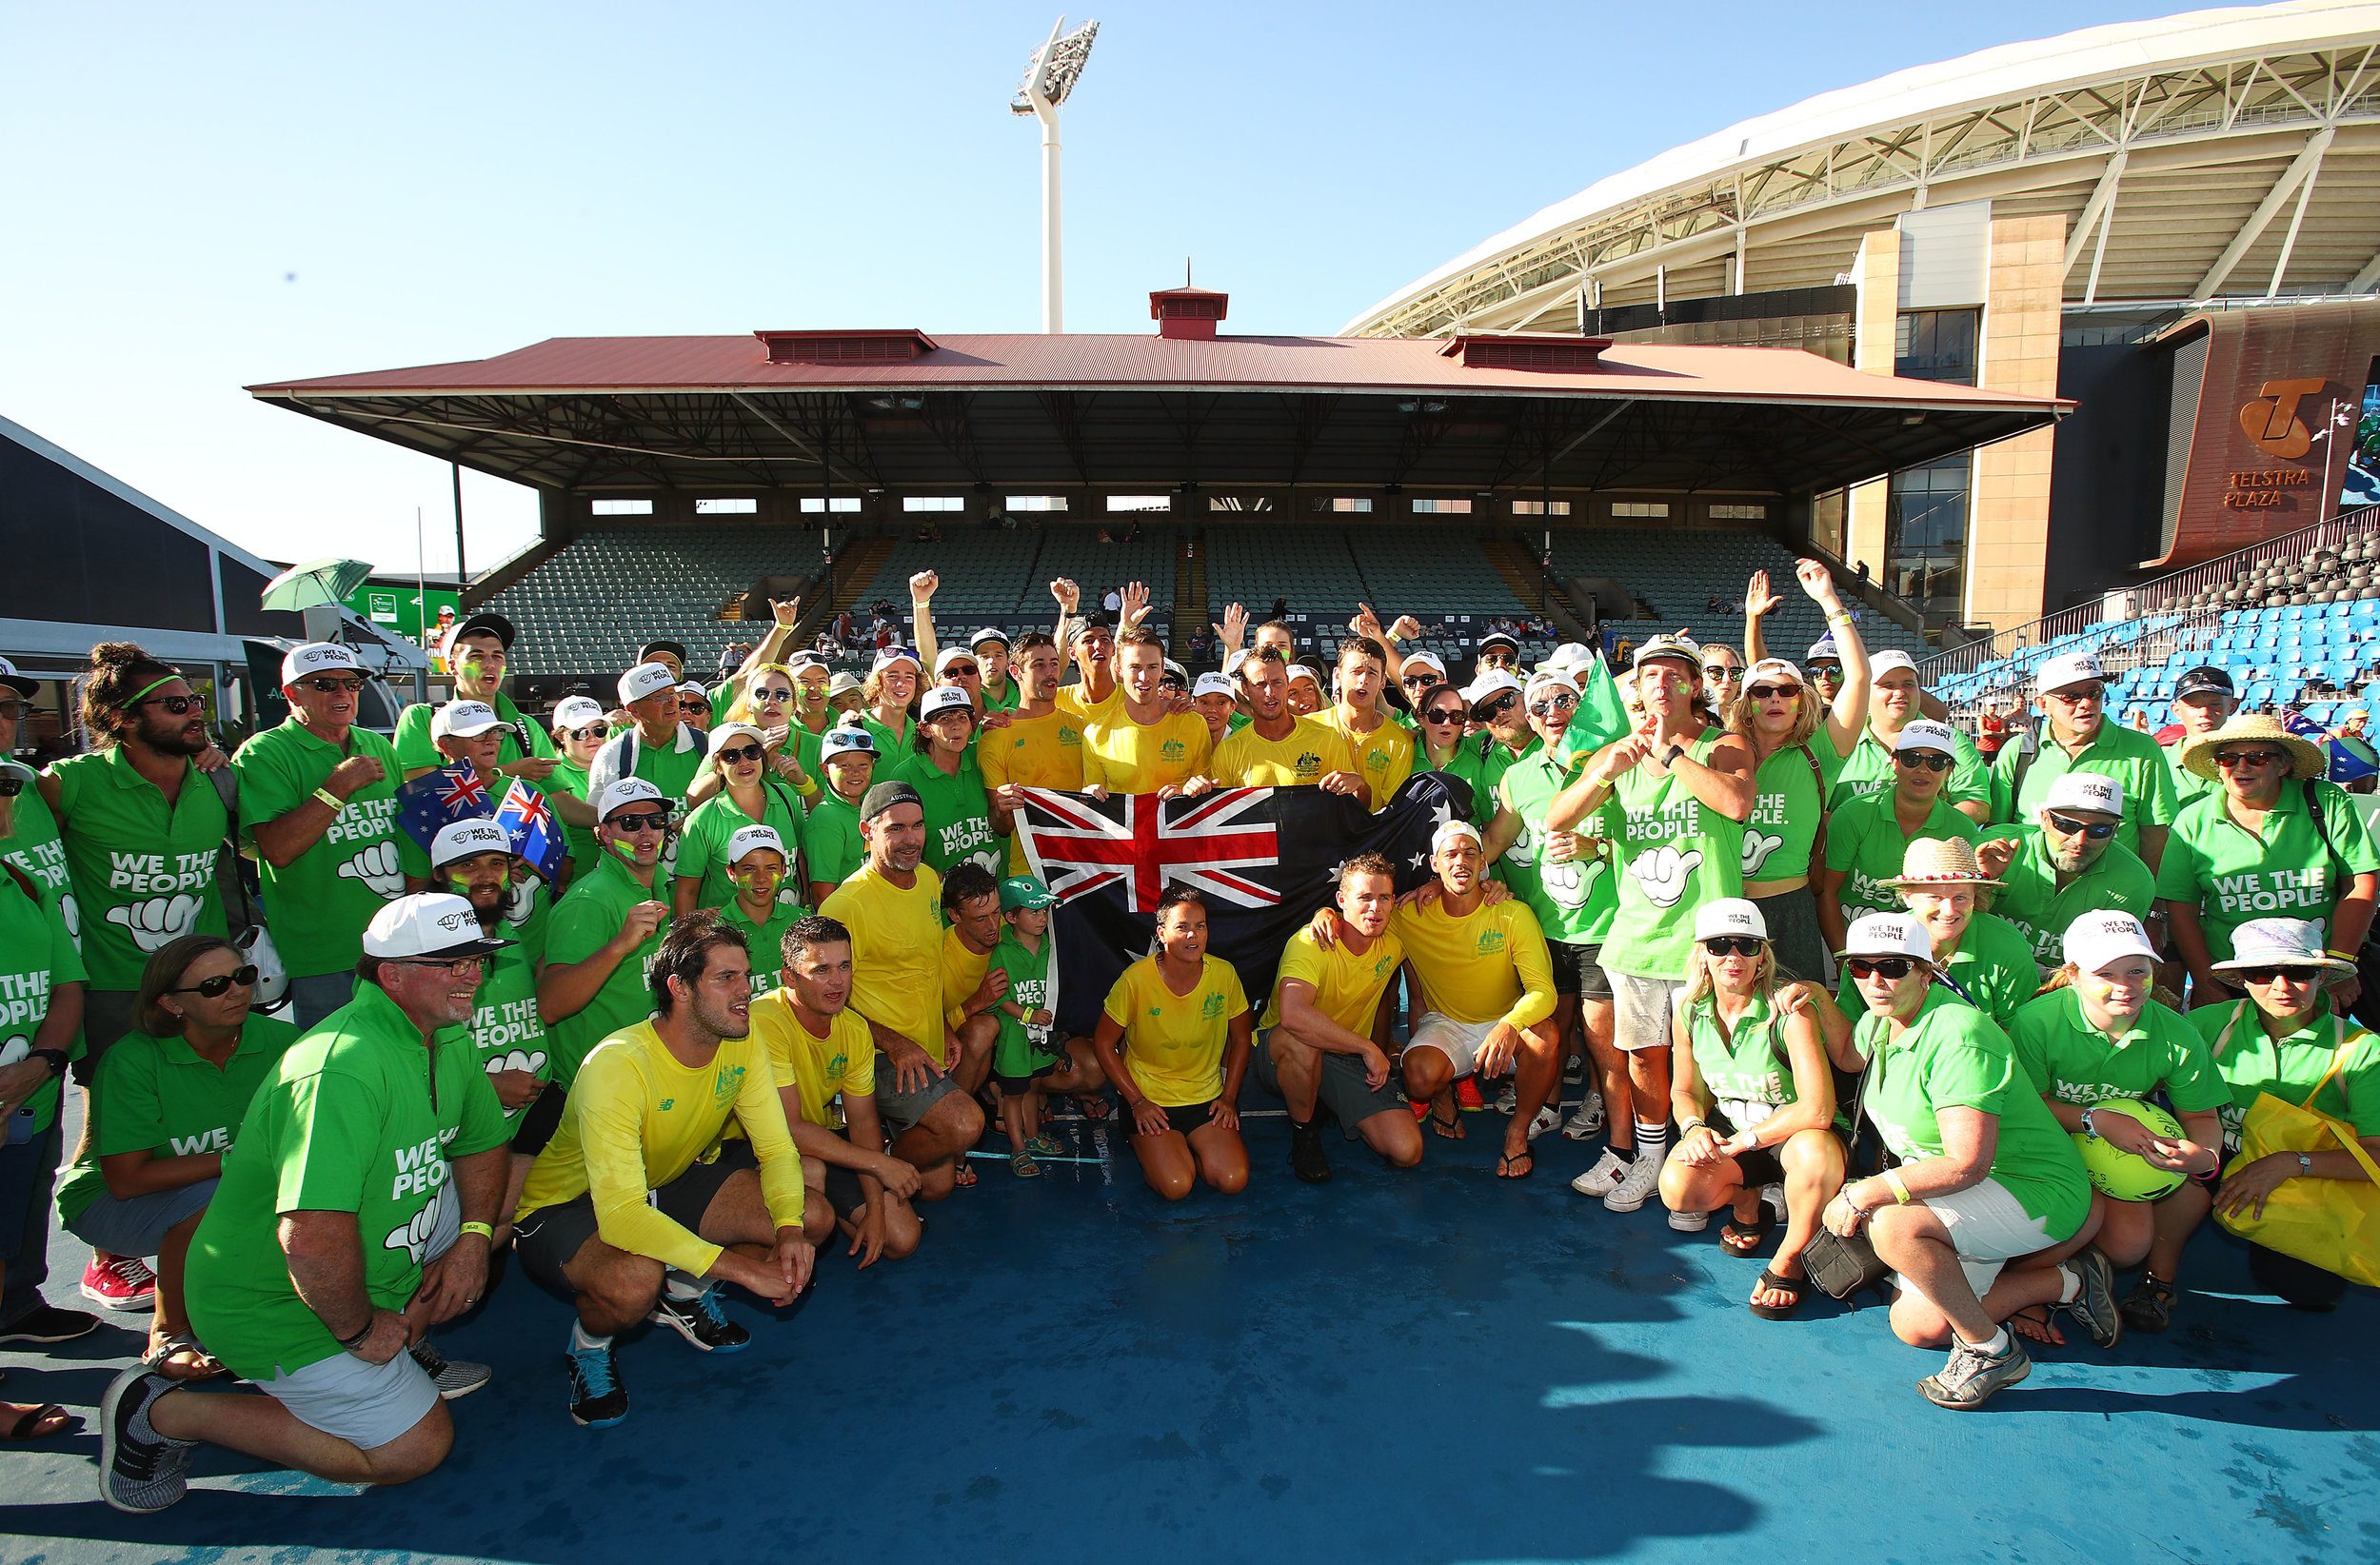 We The People supporters in an exclusive meet & greet opportunity with the entire Davis Cup team after their win against Bosnia in Adelaide 2019.